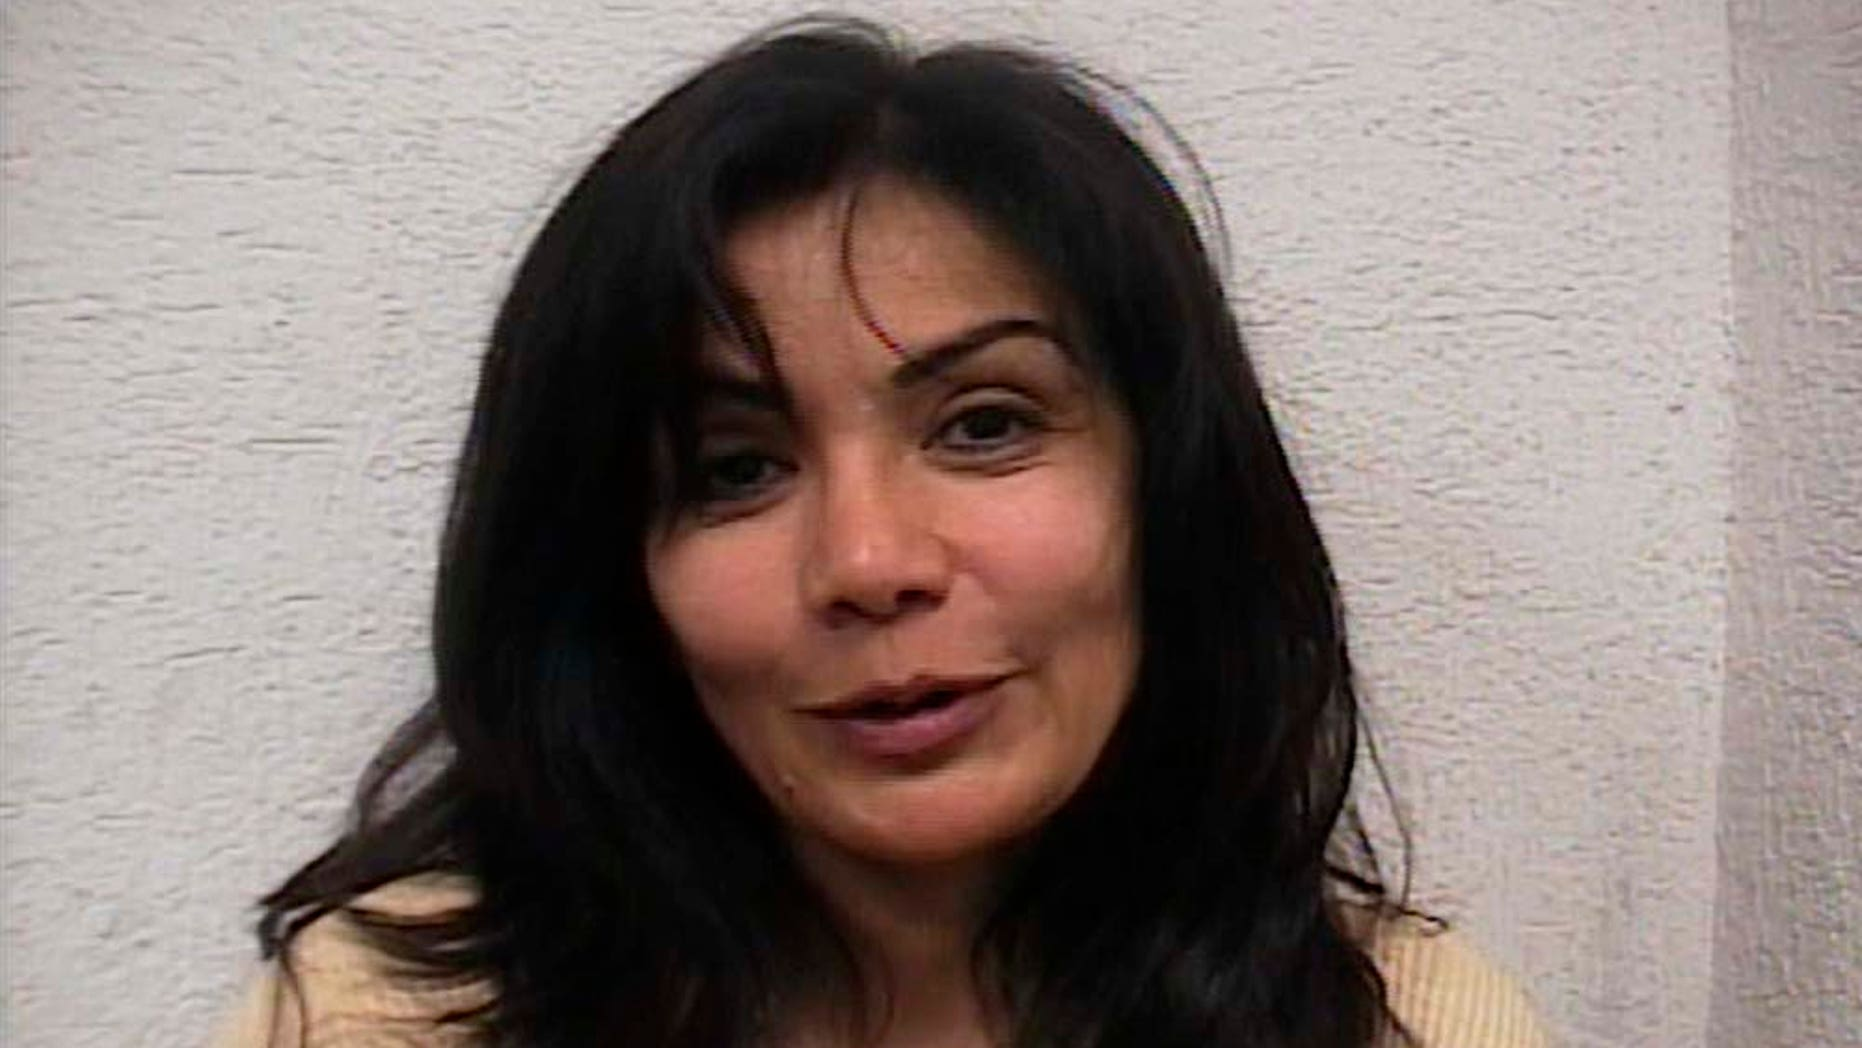 FILE - In this Sept. 28, 2007 file photo released by the Mexican Attorney General's Office, or PGR, Sandra Avila Beltran, dubbed the Queen of the Pacific, smiles after she was arrested by federal agents outside a restaurant in southern Mexico City.  Mexico City's prison authority says a doctor was improperly admitted to Santa Martha Acatitla women's lockup in January to give a Botox injection to Beltran, a purported top decision-maker in the Sinaloa cartel. (AP Photo/PGR, File)